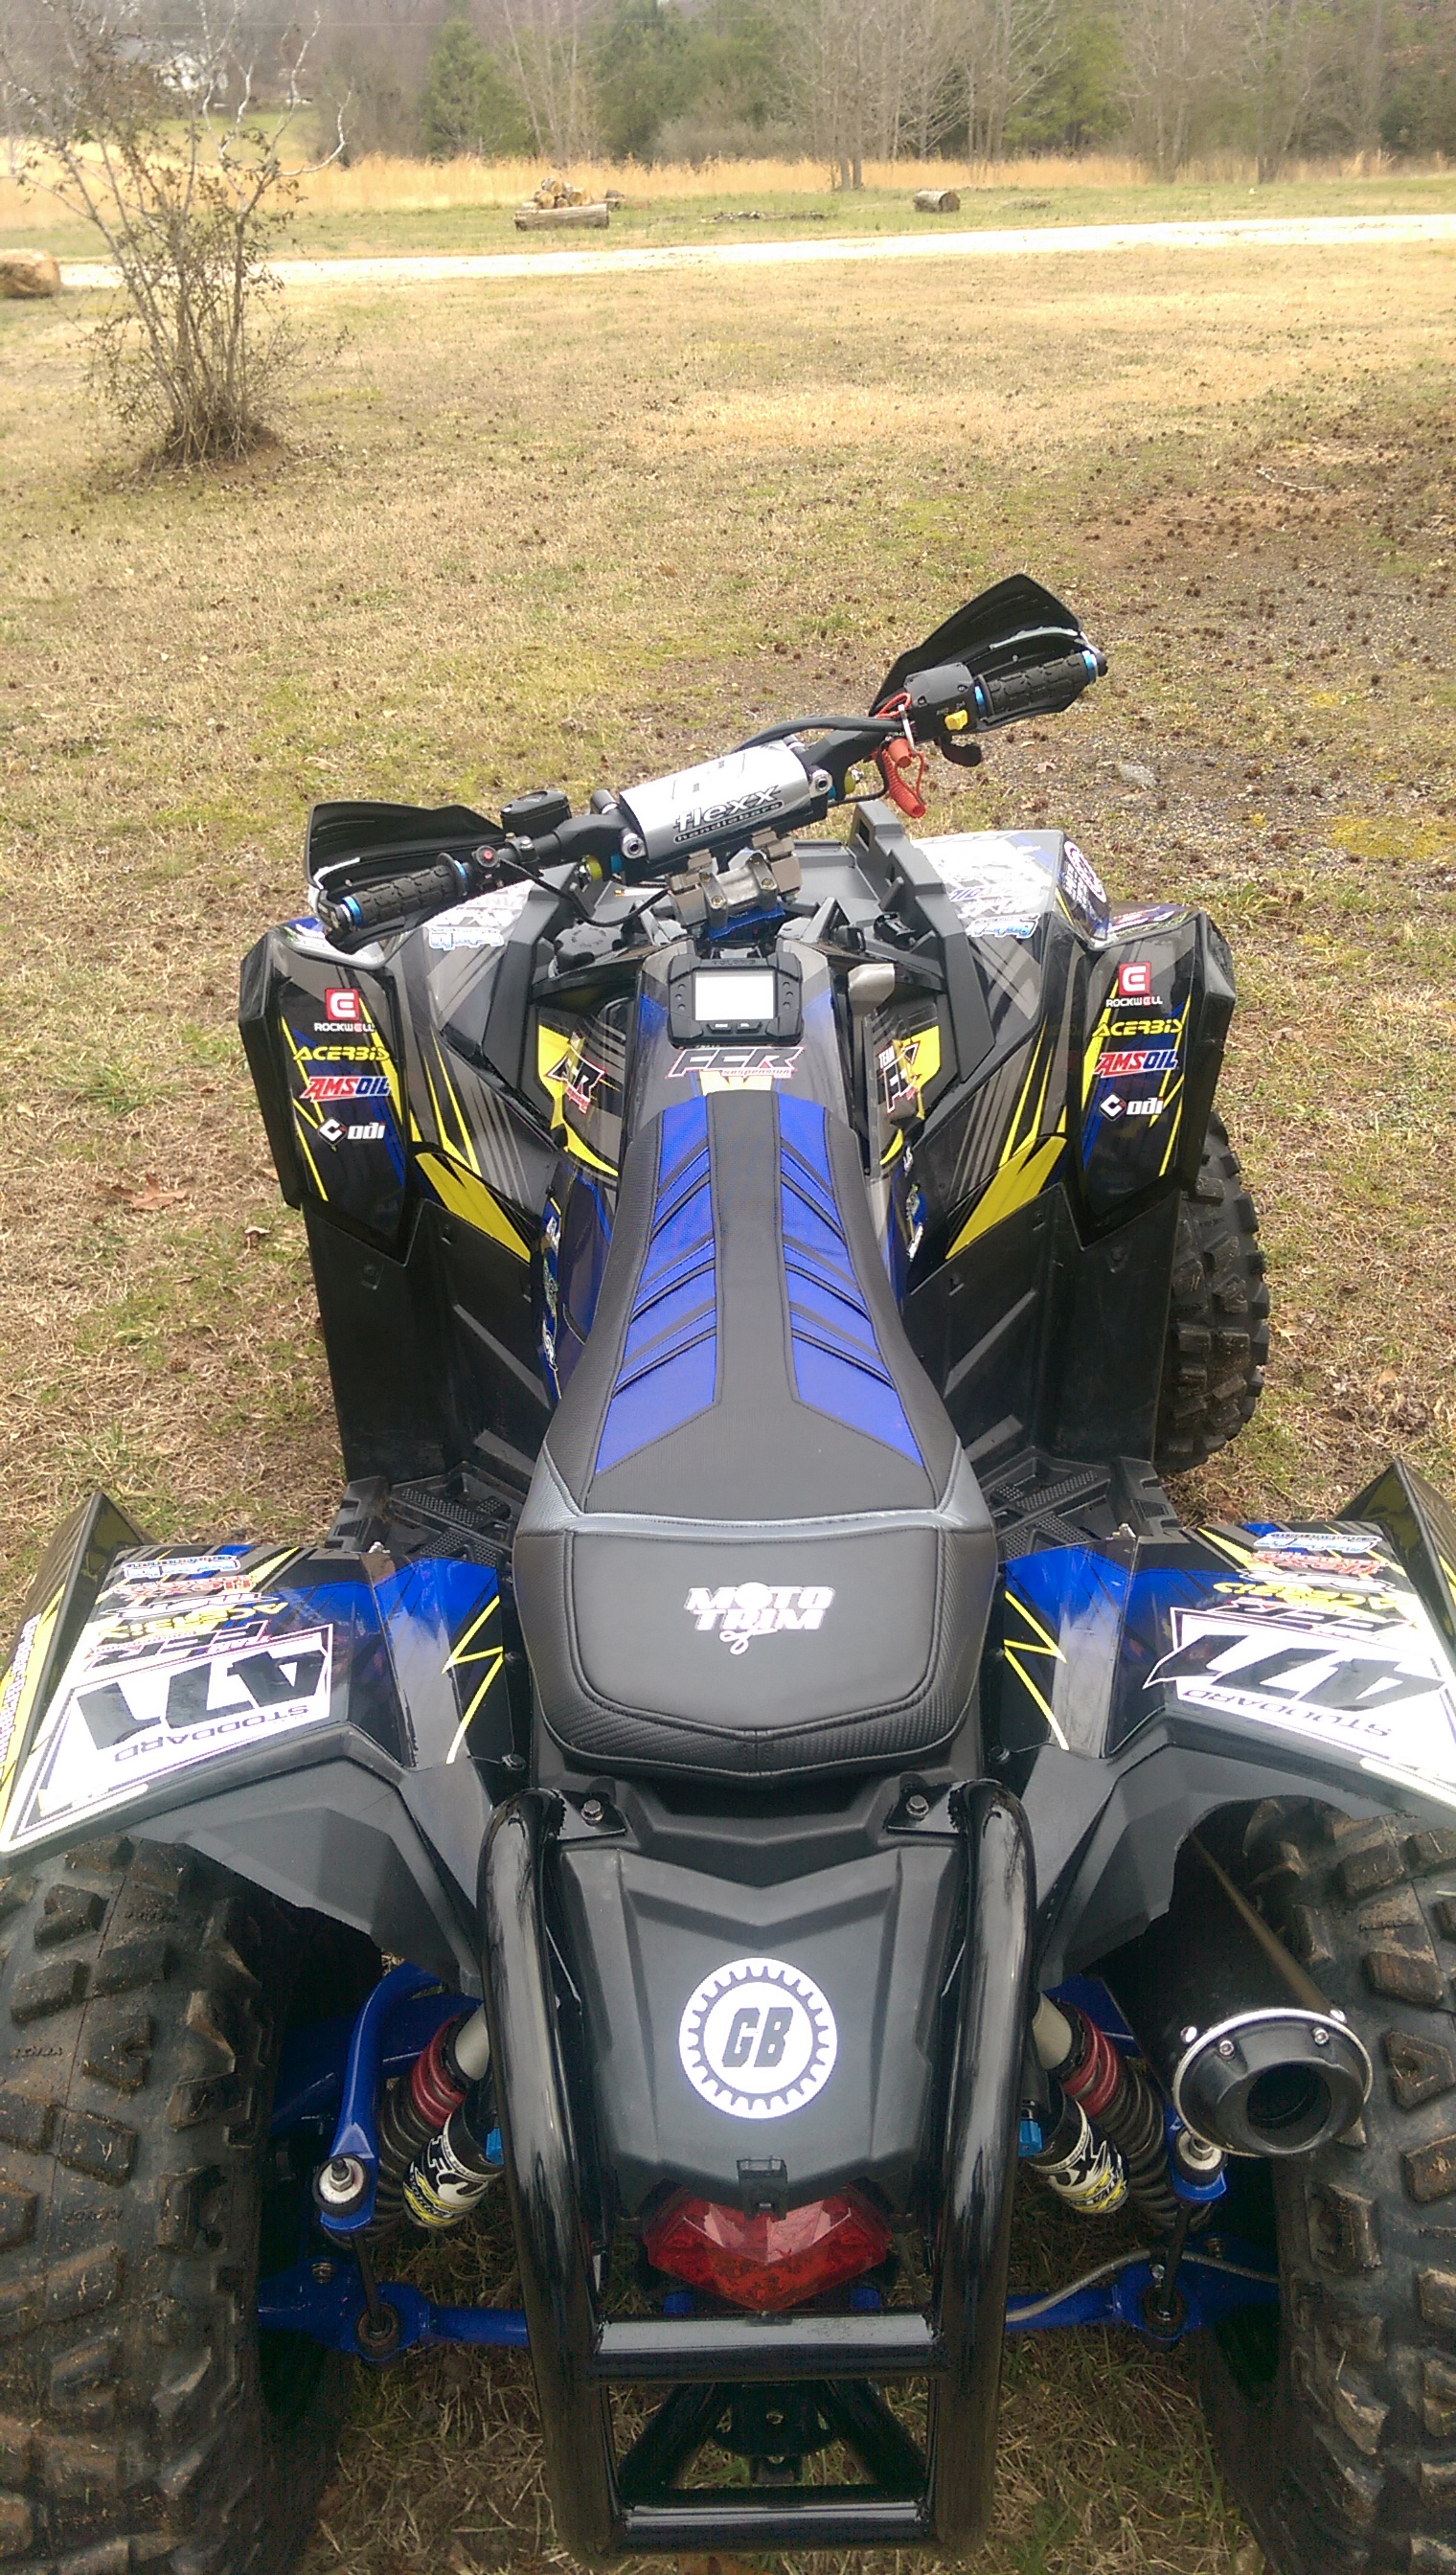 2013 Polaris Scrambler 850le Xc Ready Polaris Atv Forum